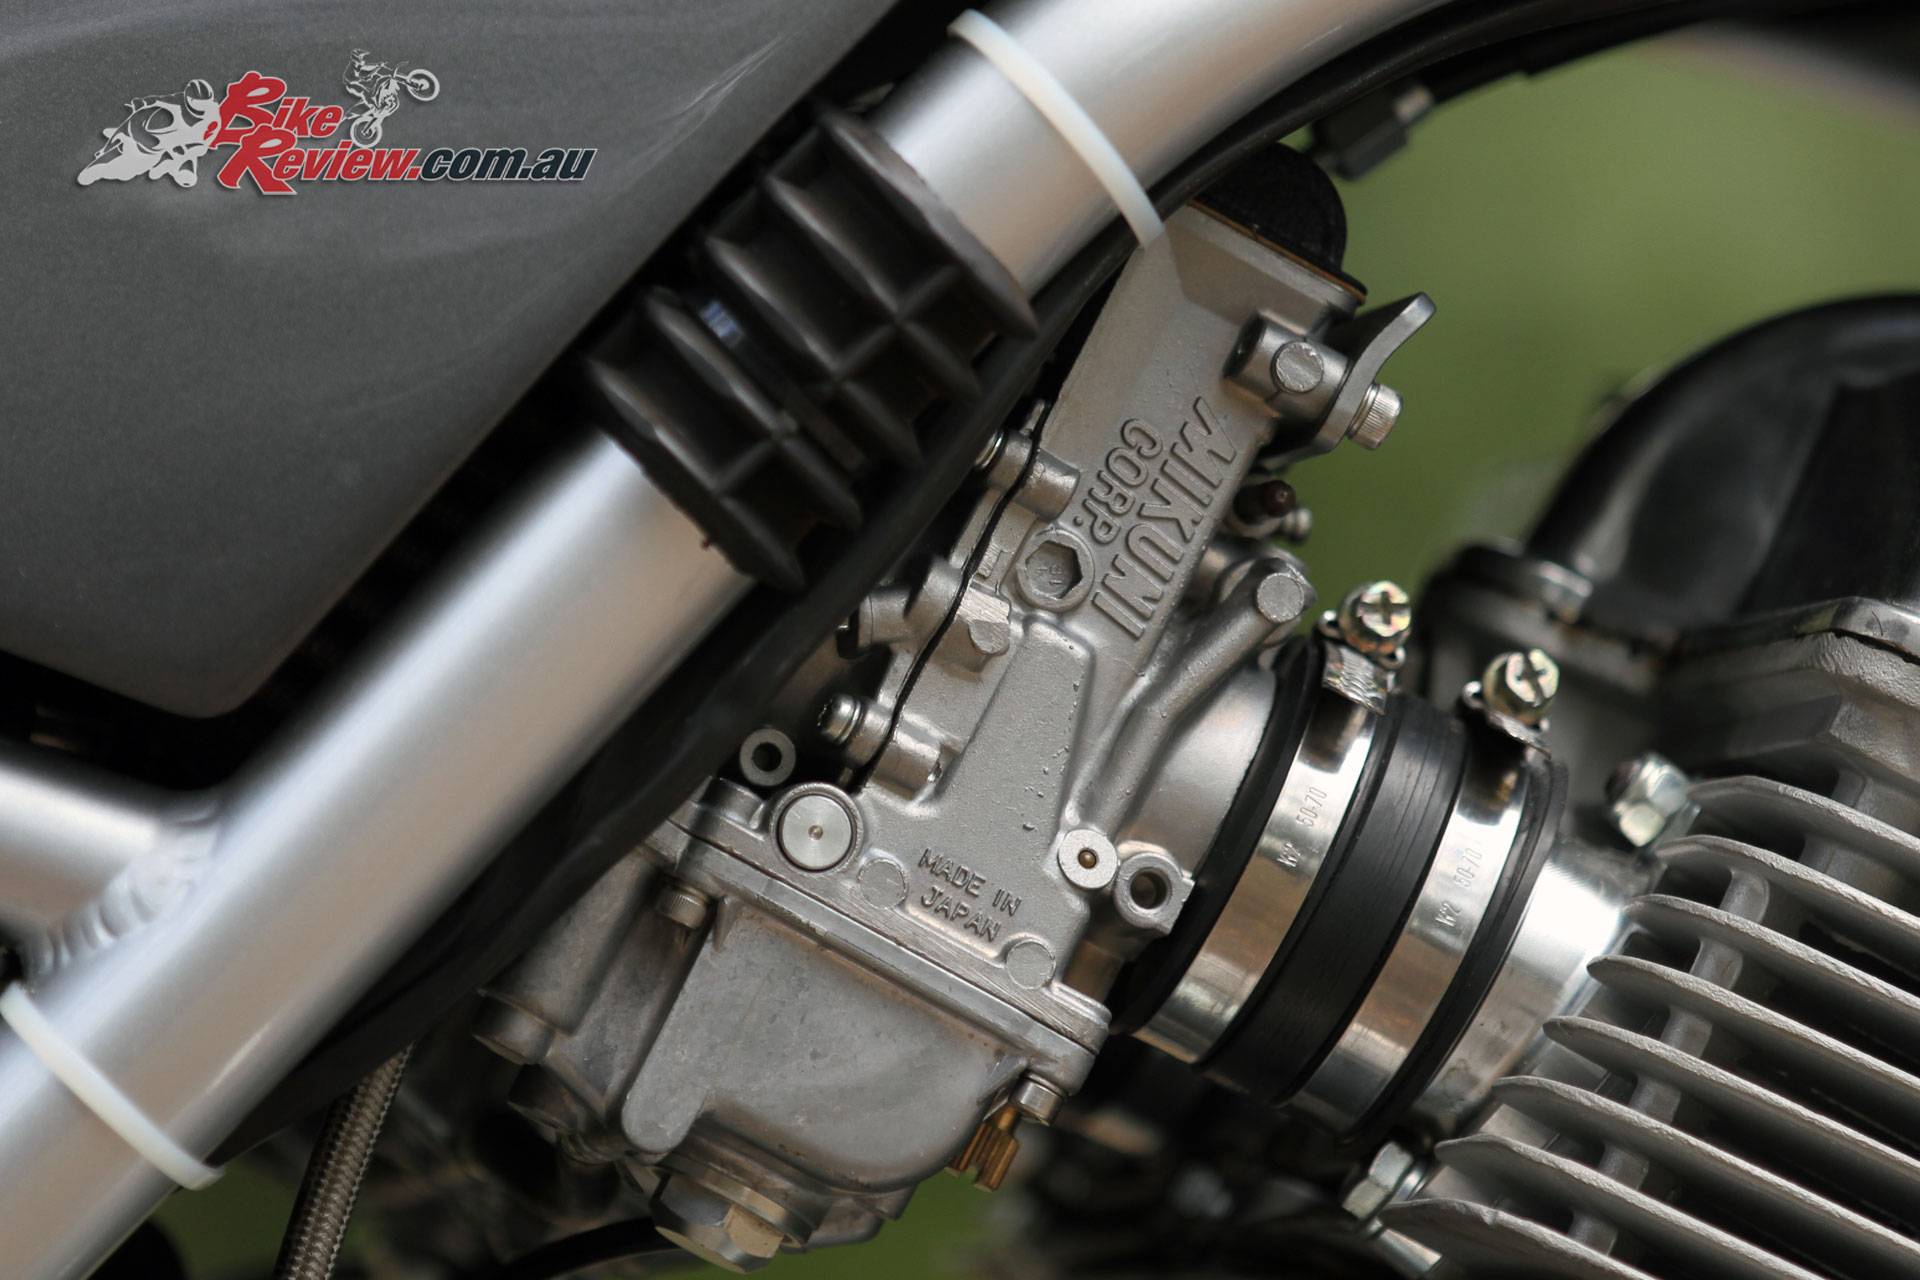 Mikuni RS 36mm Flatslide carburetors are modified from a four-cylinder Japanese machine to suit the triple